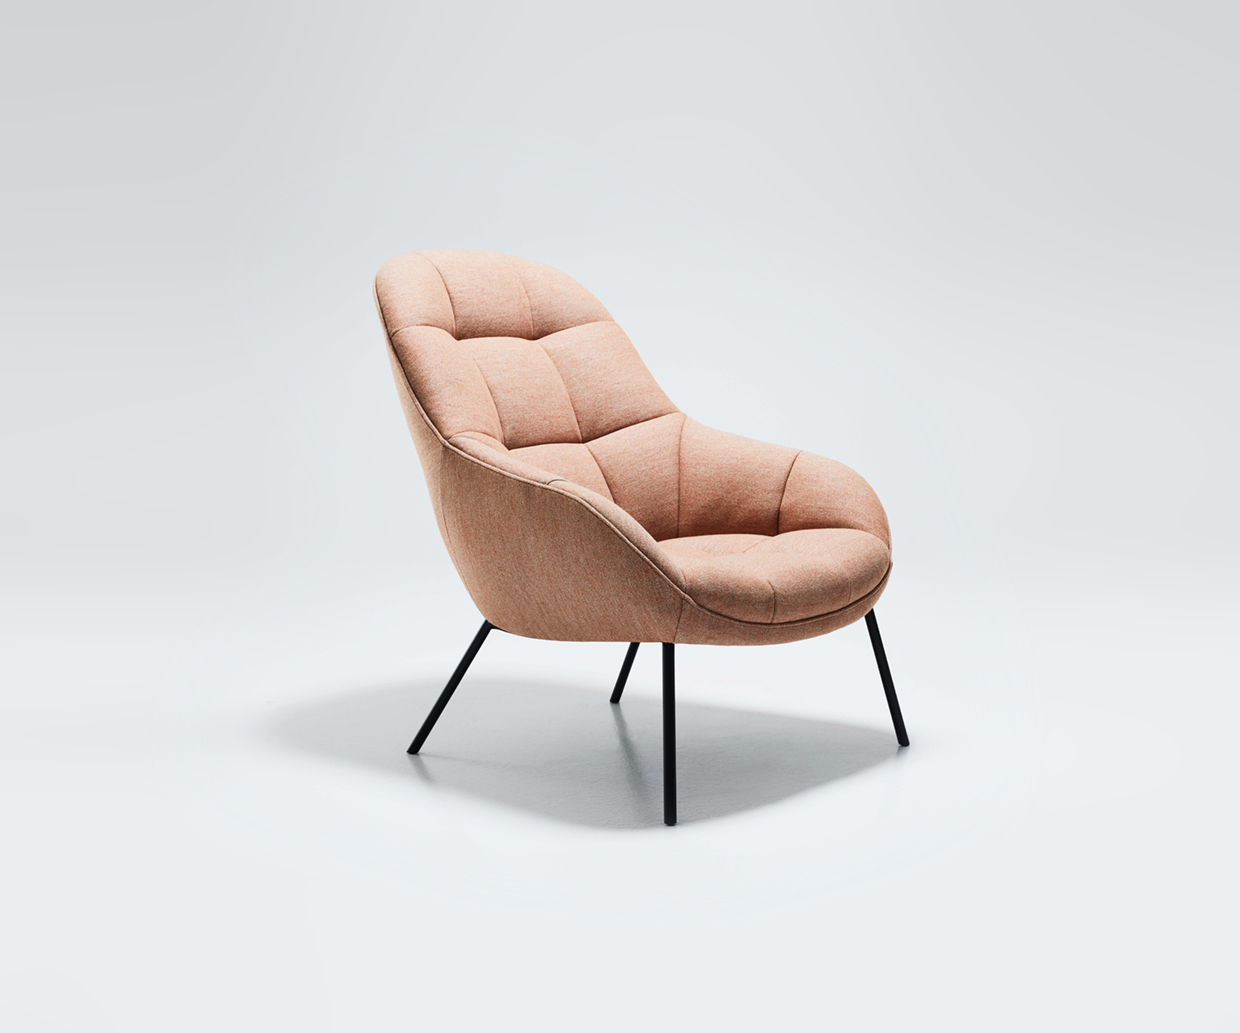 The 'Mango' armchair by Note Design Studio for Won Design.